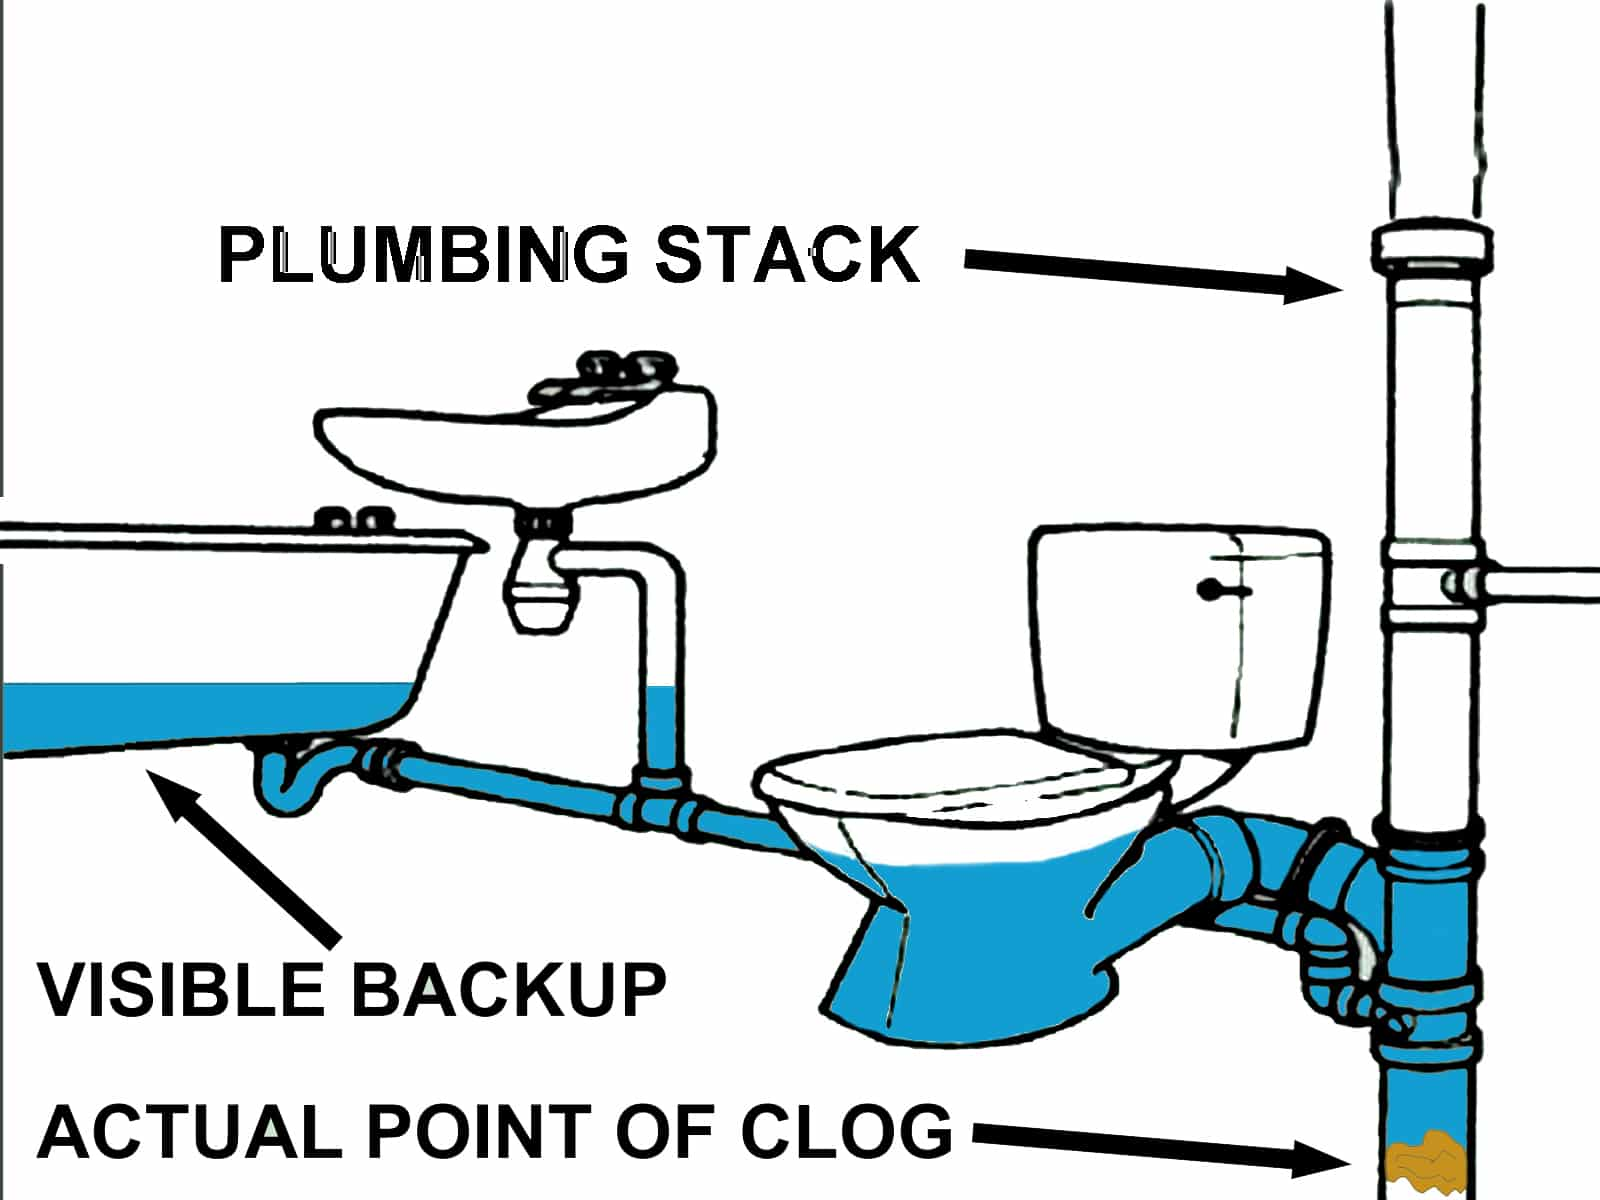 A Clogged Plumbing Stack Can Affect Many Of Your Fixtures